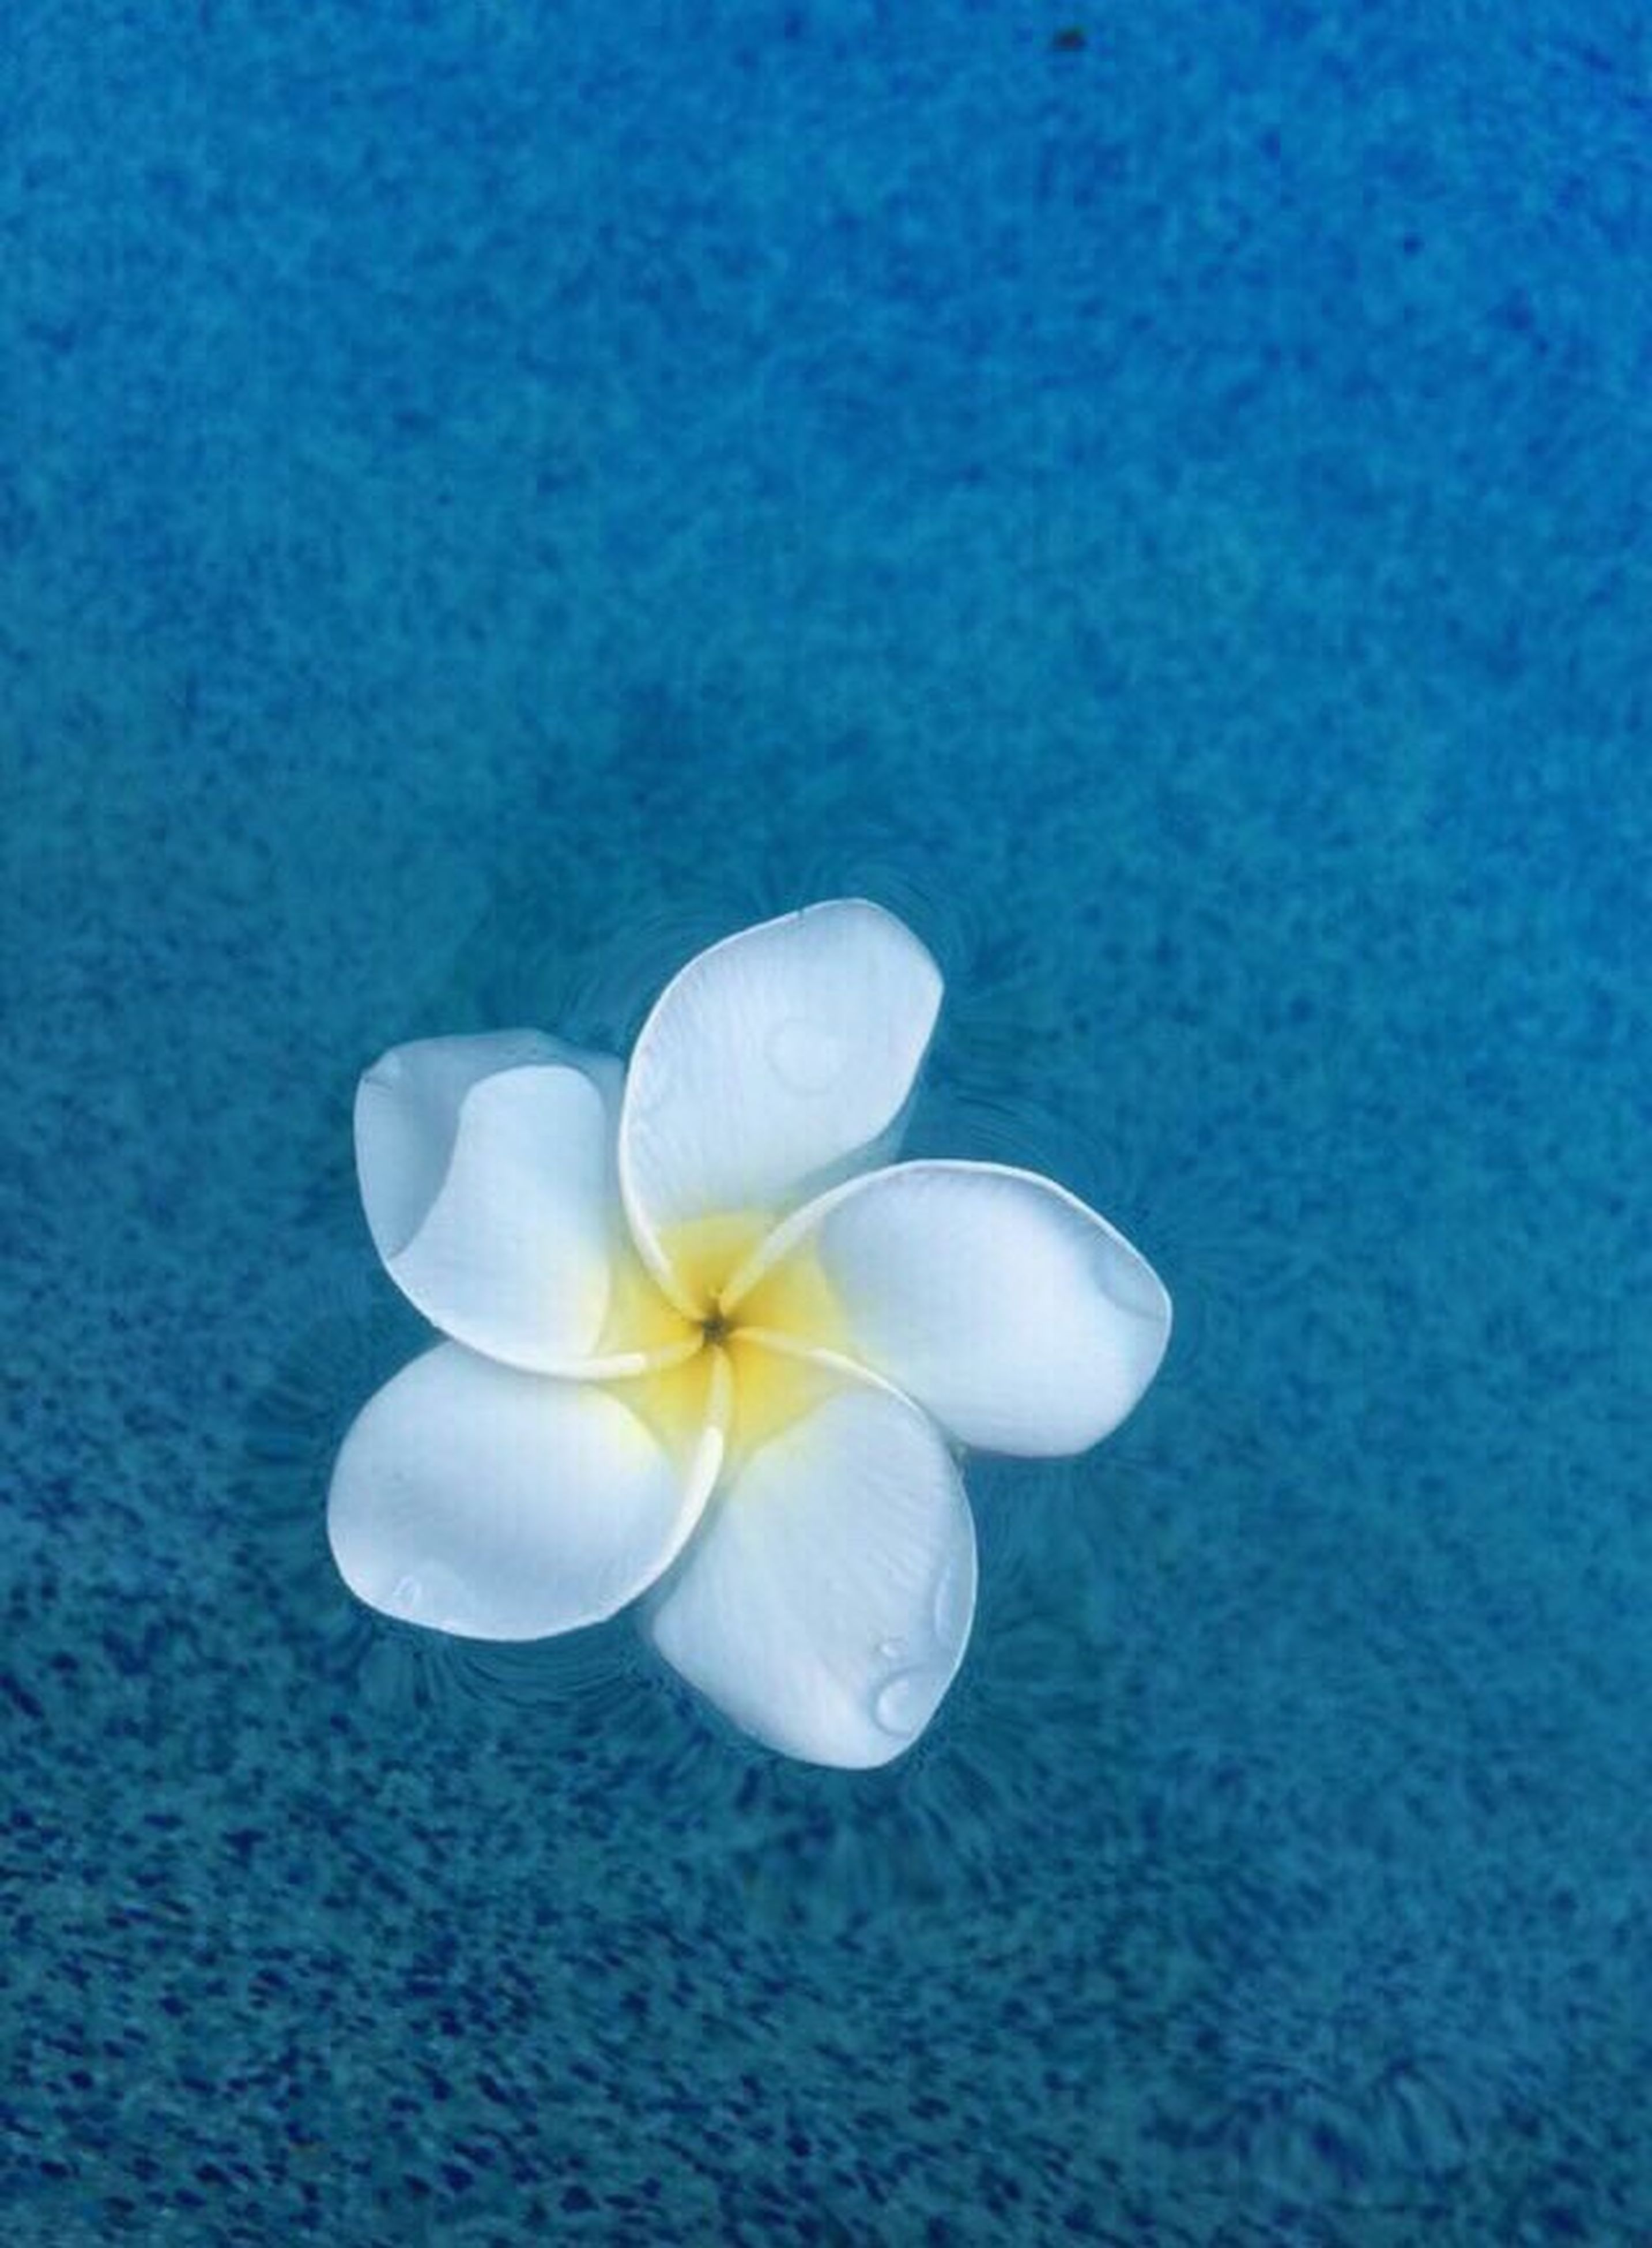 blue, no people, close-up, flower, nature, flower head, beauty in nature, fragility, freshness, water, day, outdoors